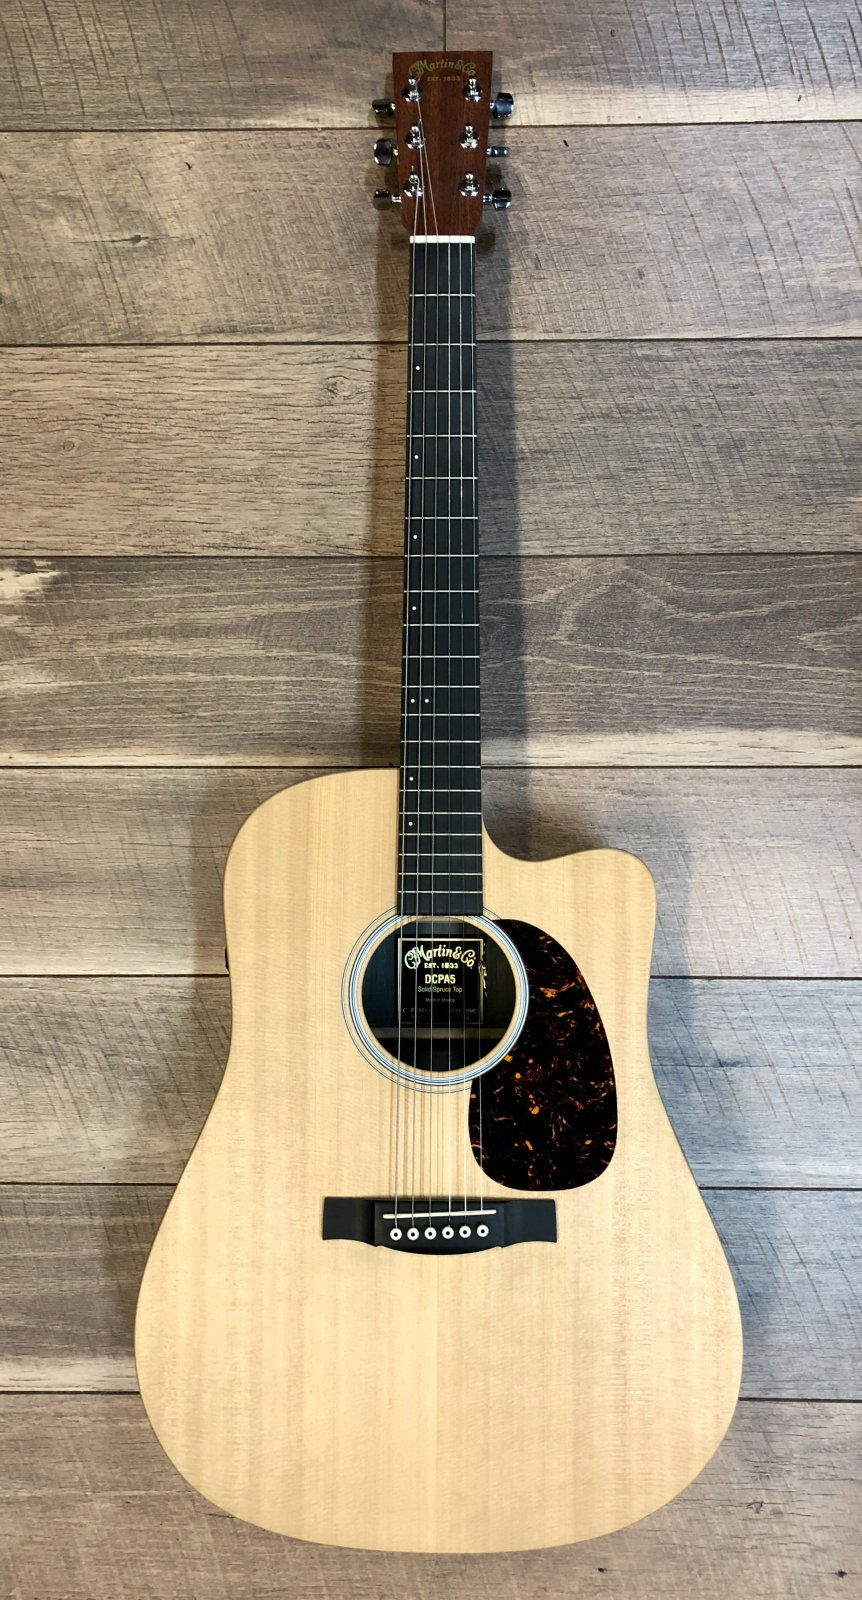 USED - Martin DCPA5 Acoustic Guitar